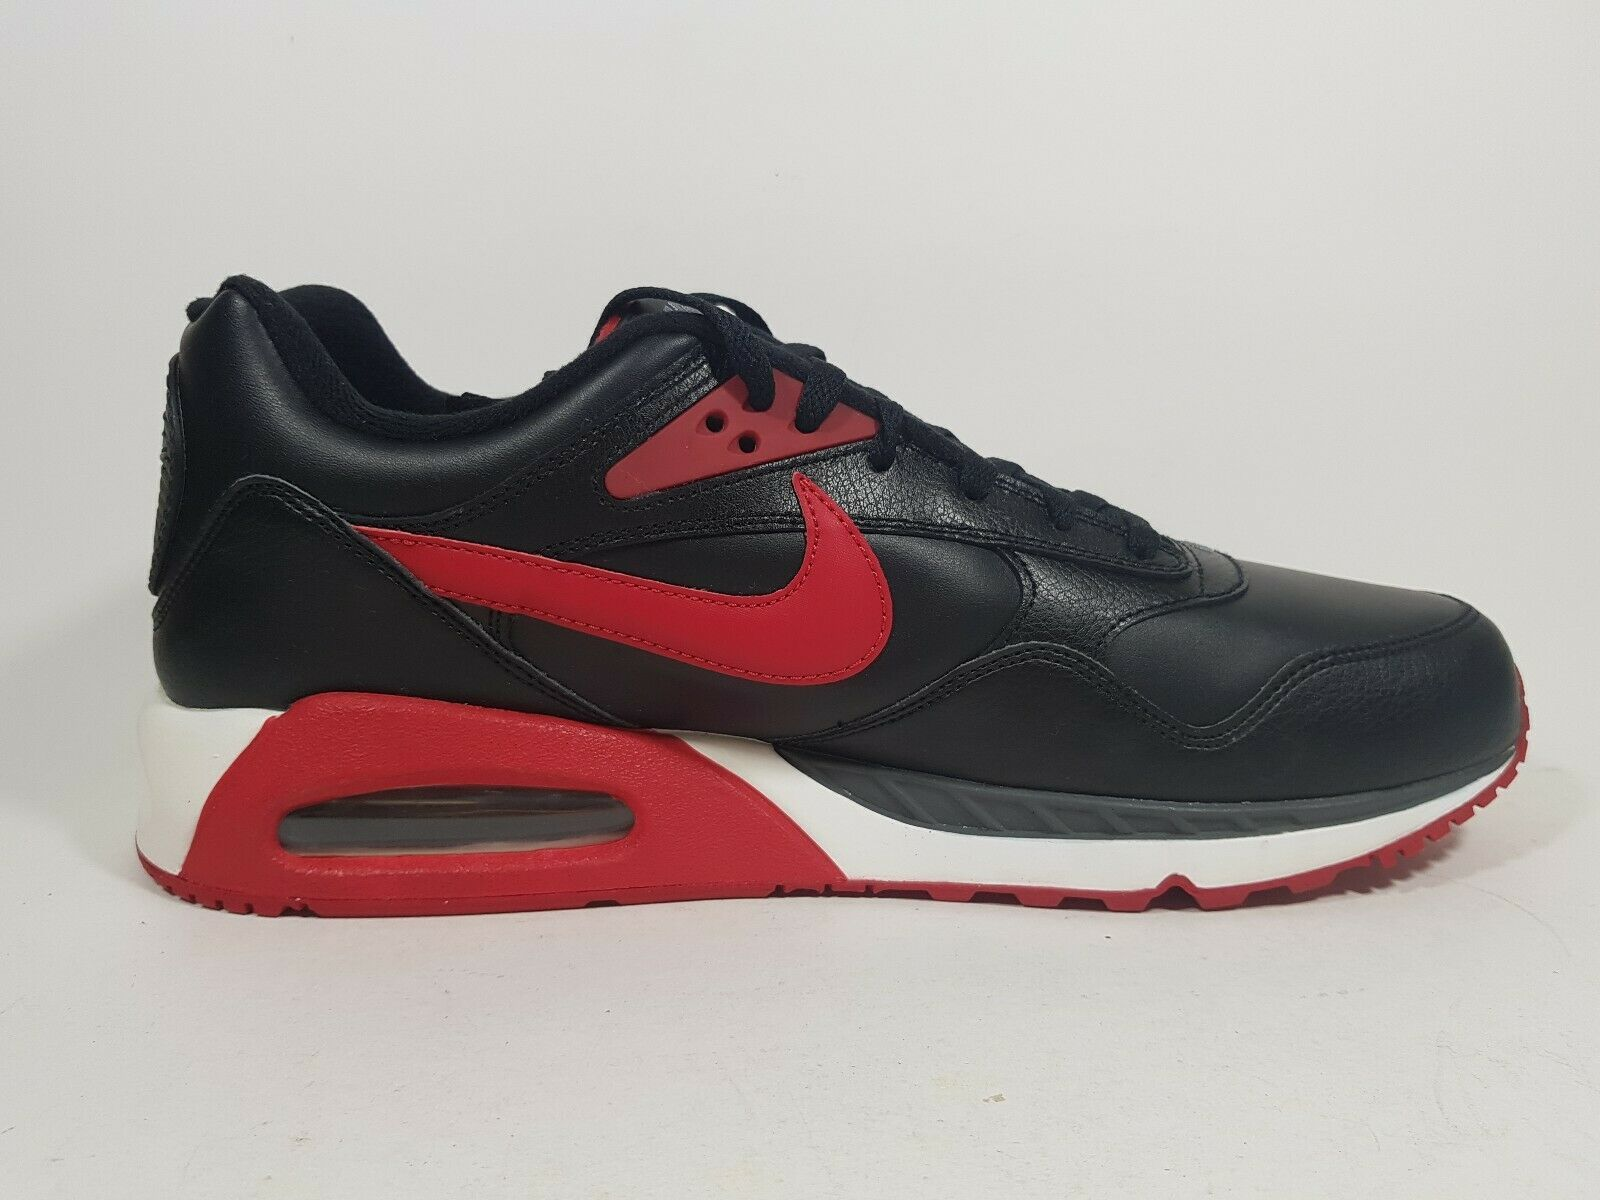 New Nike Air MAx Correlate Leather Running Black 518292 060 Mens Shoes 13 Rare image 2